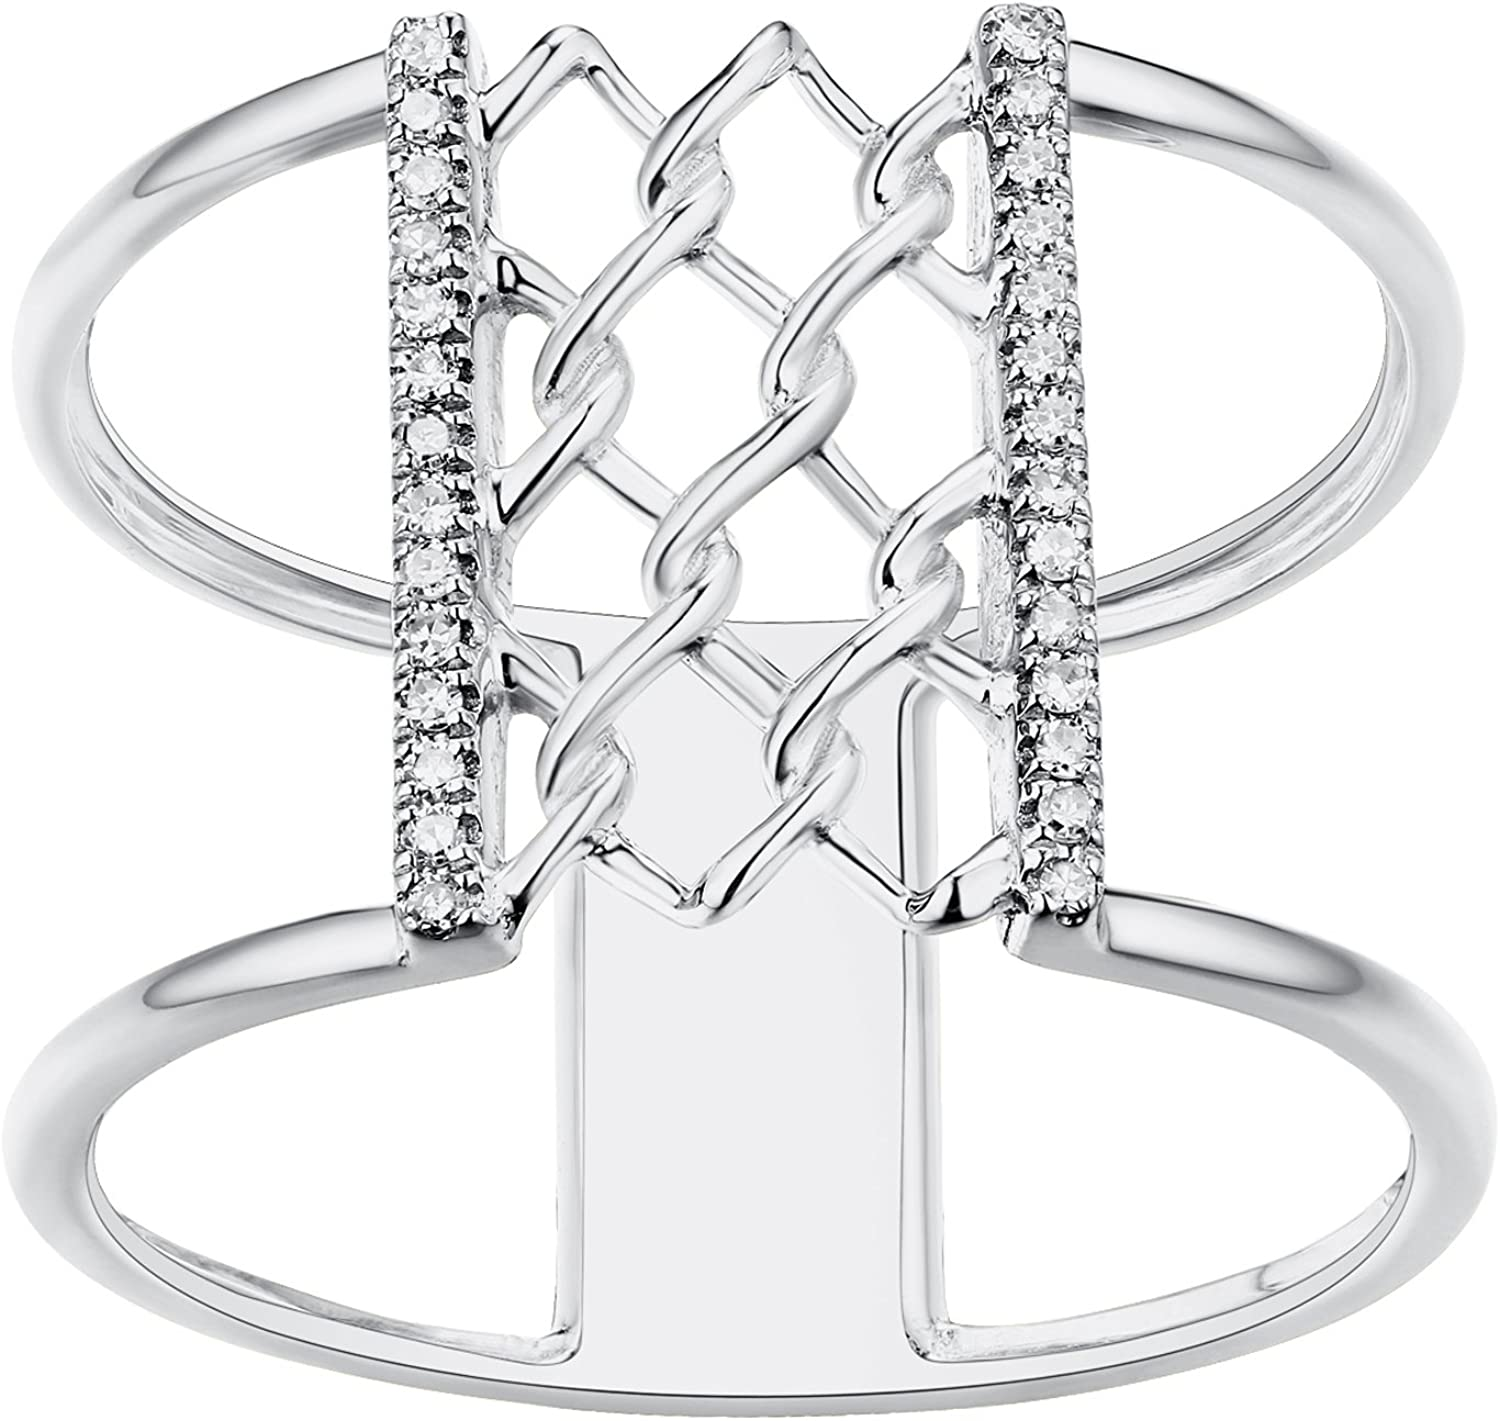 Prism Jewel 0.07CT G-H//I1 Natural Diamond Light Weight Clover Wrap Ring